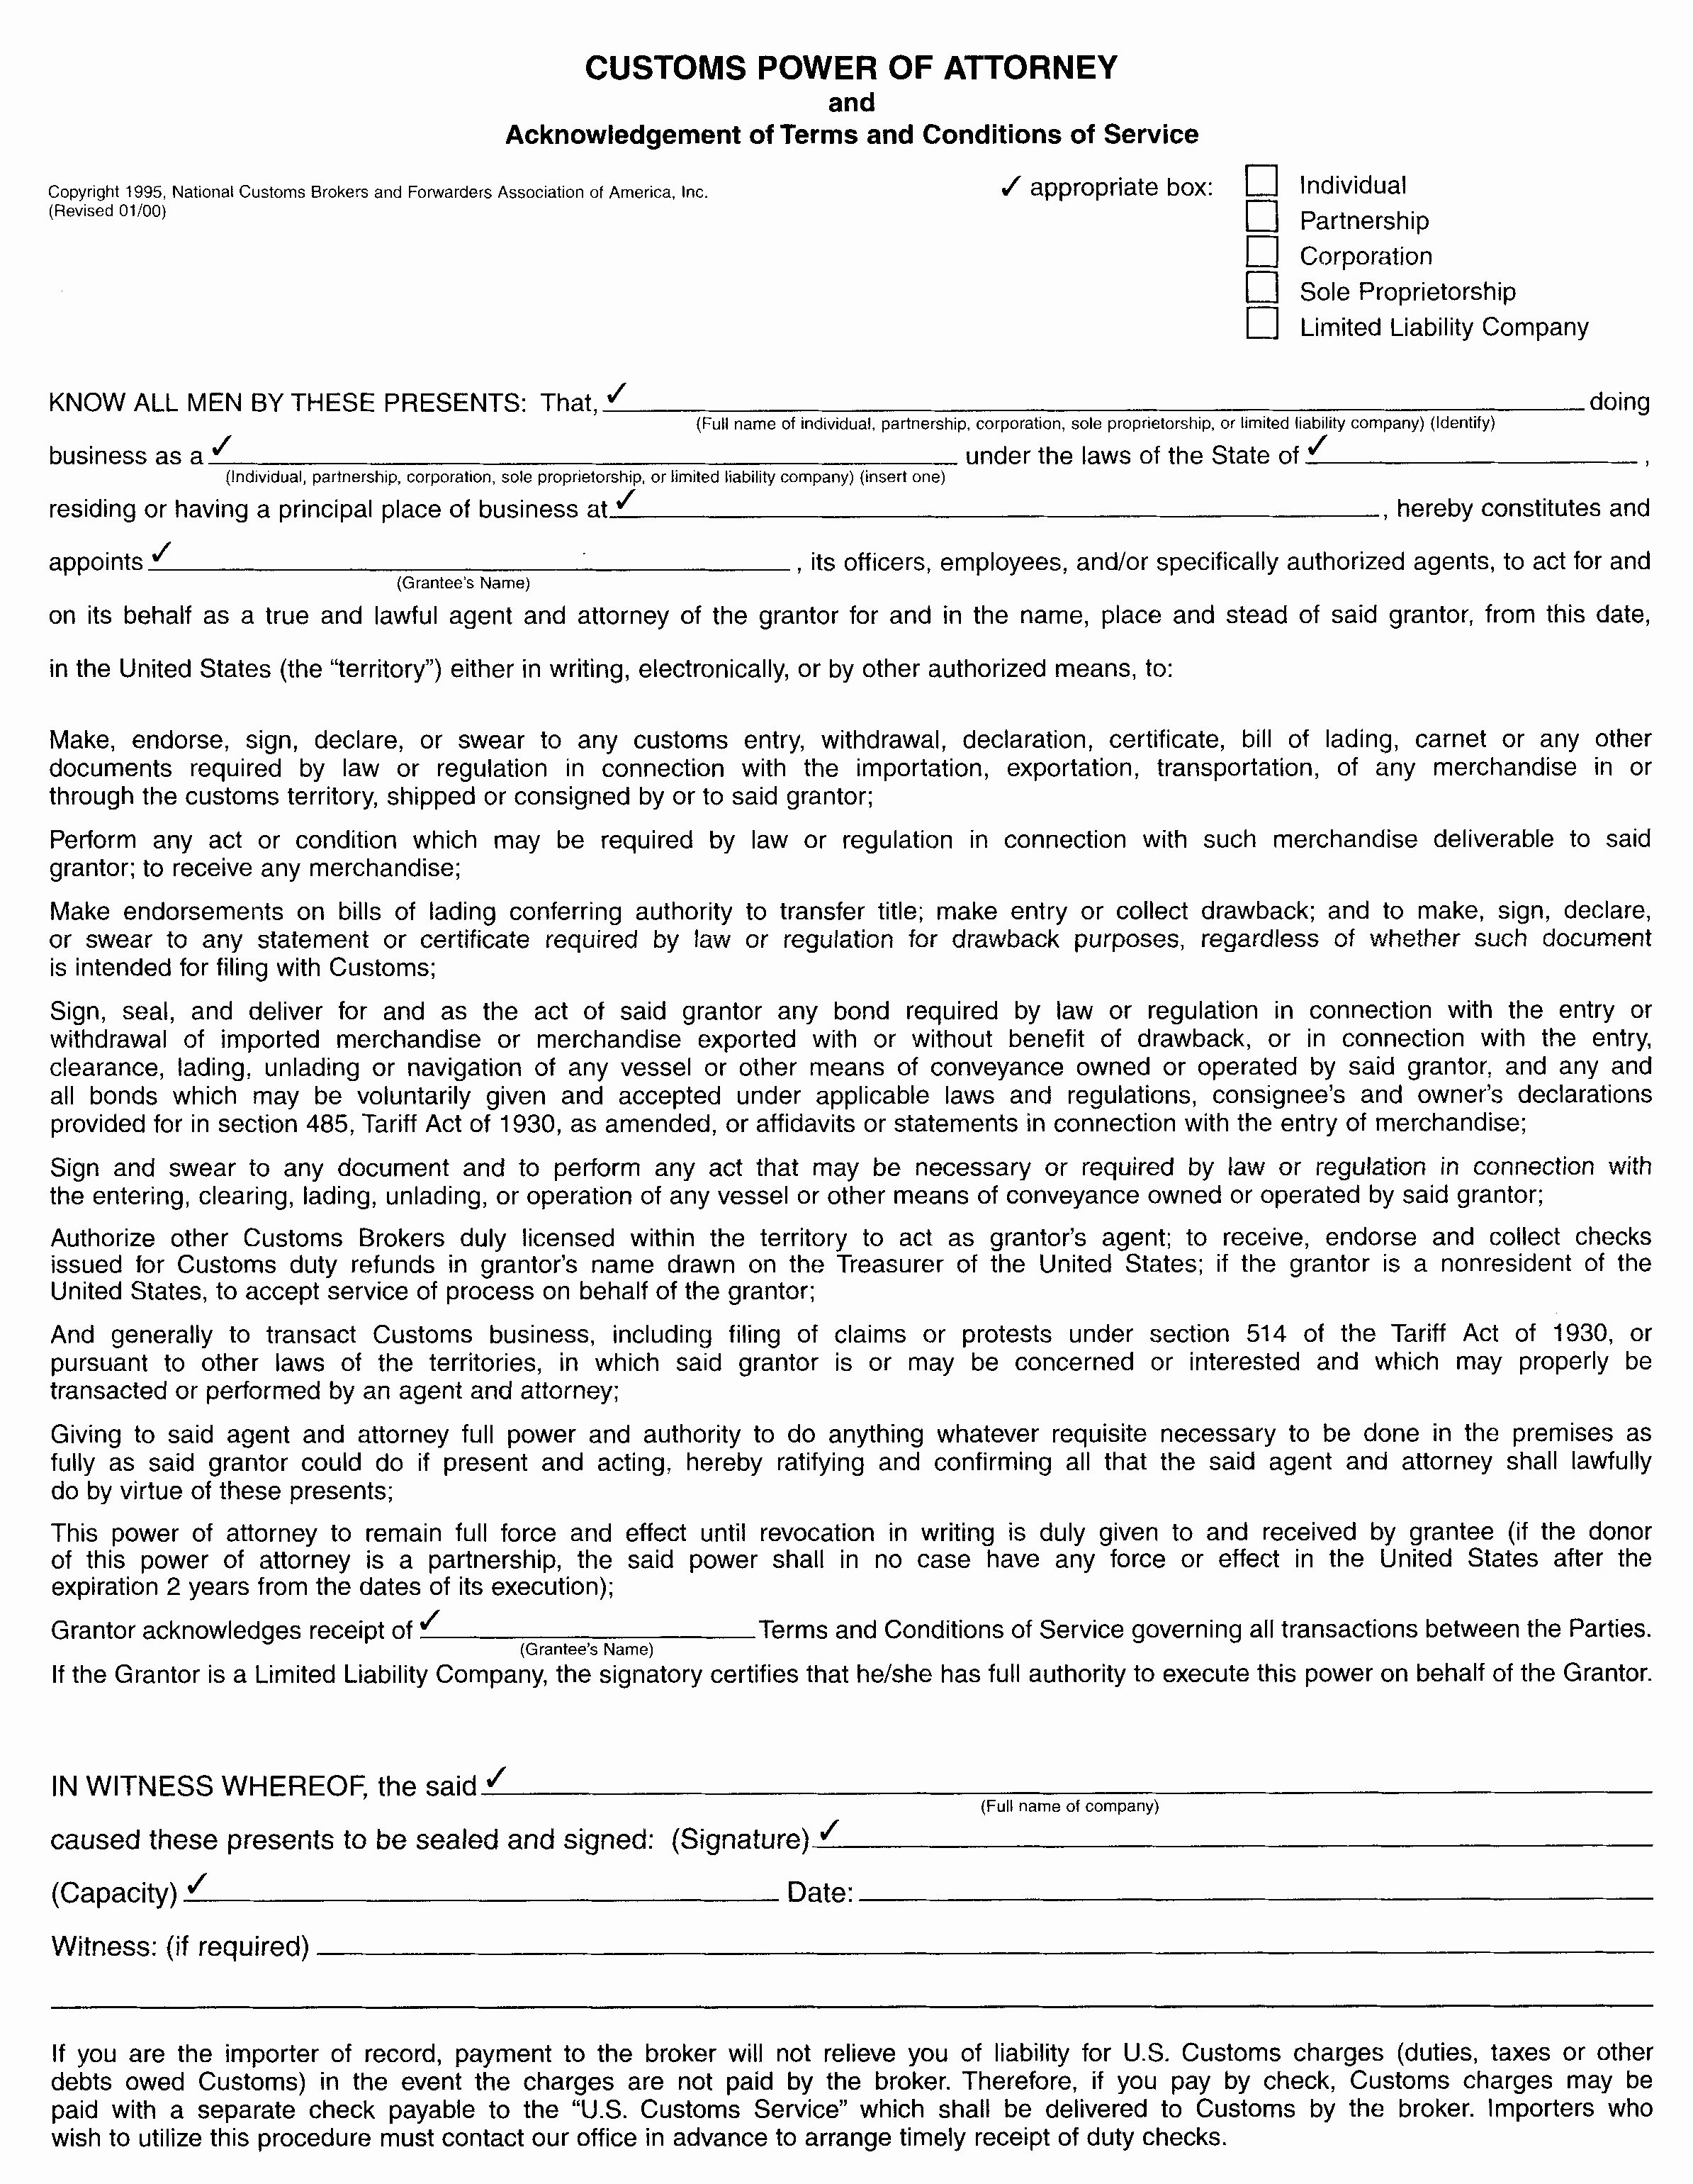 Georgia Health Care Power Of attorney form Fresh Power attorney form Texas Medical Fresh Power attorney form Texas